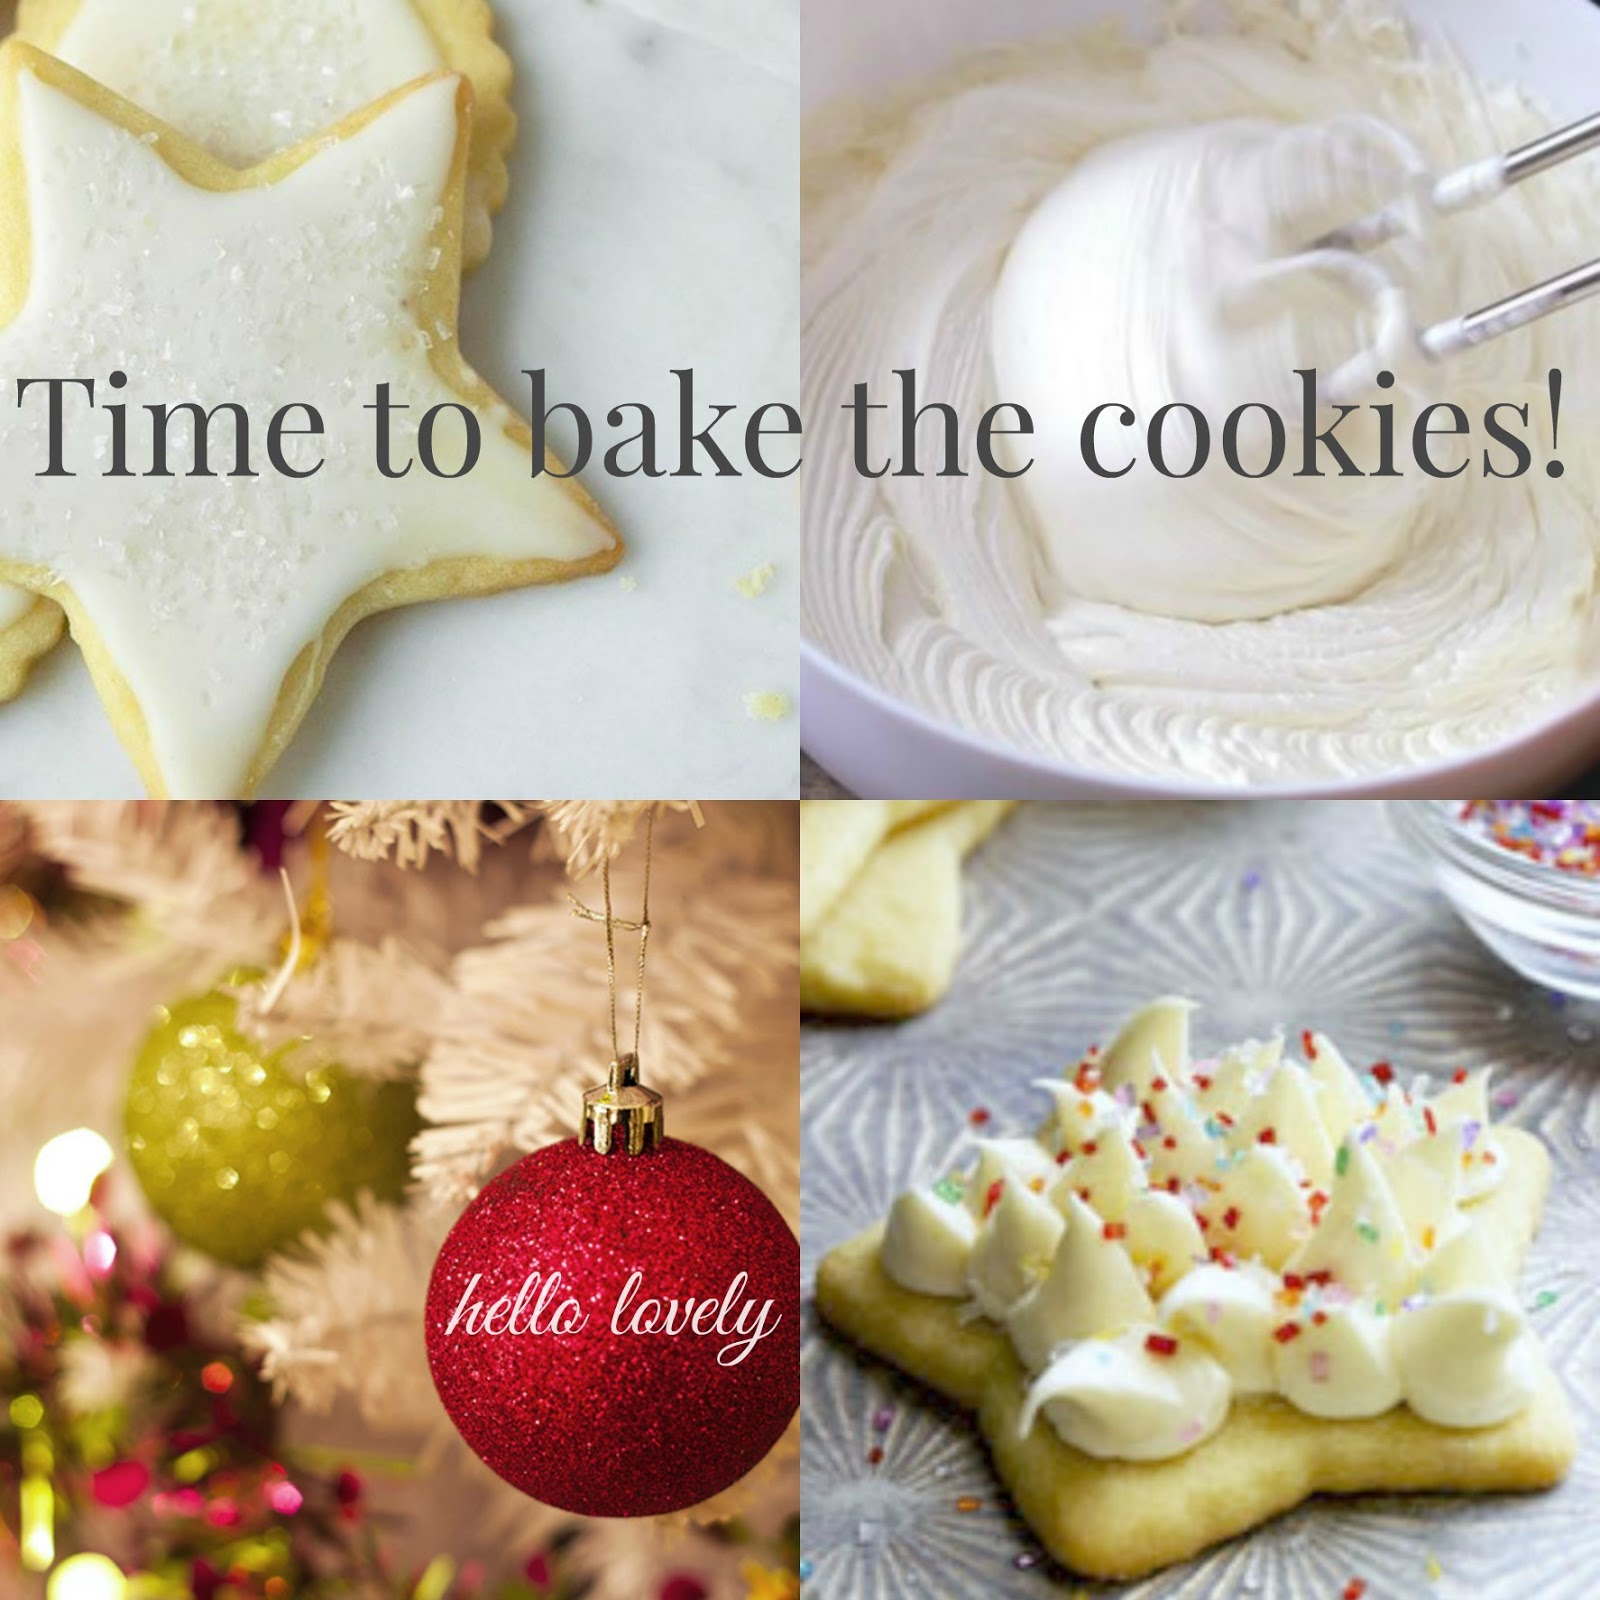 hello-lovely-studio-christmas-holidays-cookie-recipe-buttercream-hellolovely